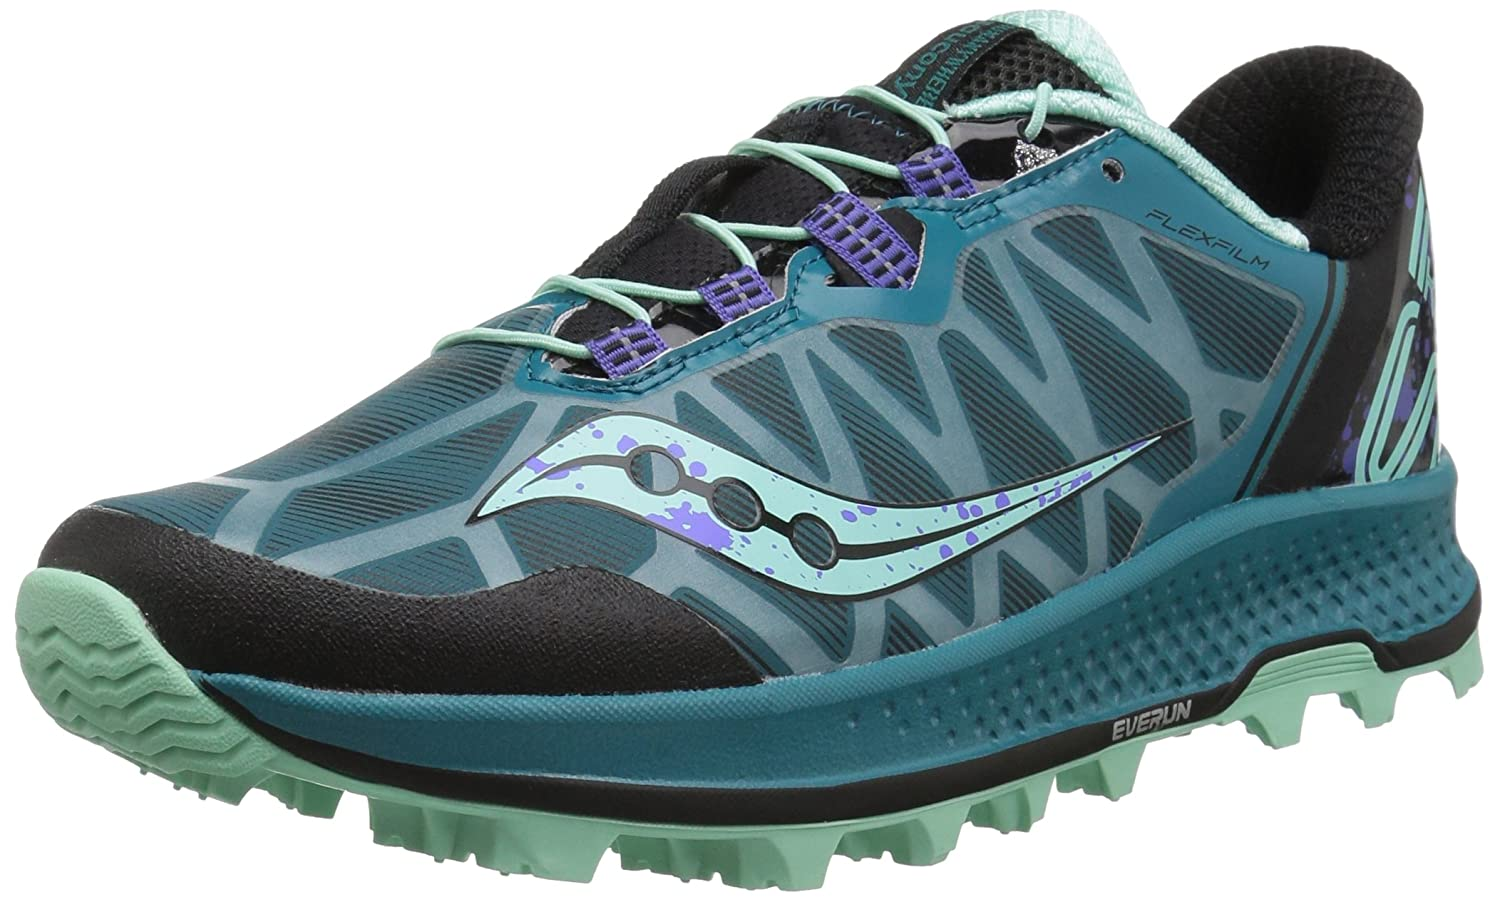 Saucony Women's Koa St Running-Shoes B077Y1LXN1 7 B(M) US|Green/Black/Aqua